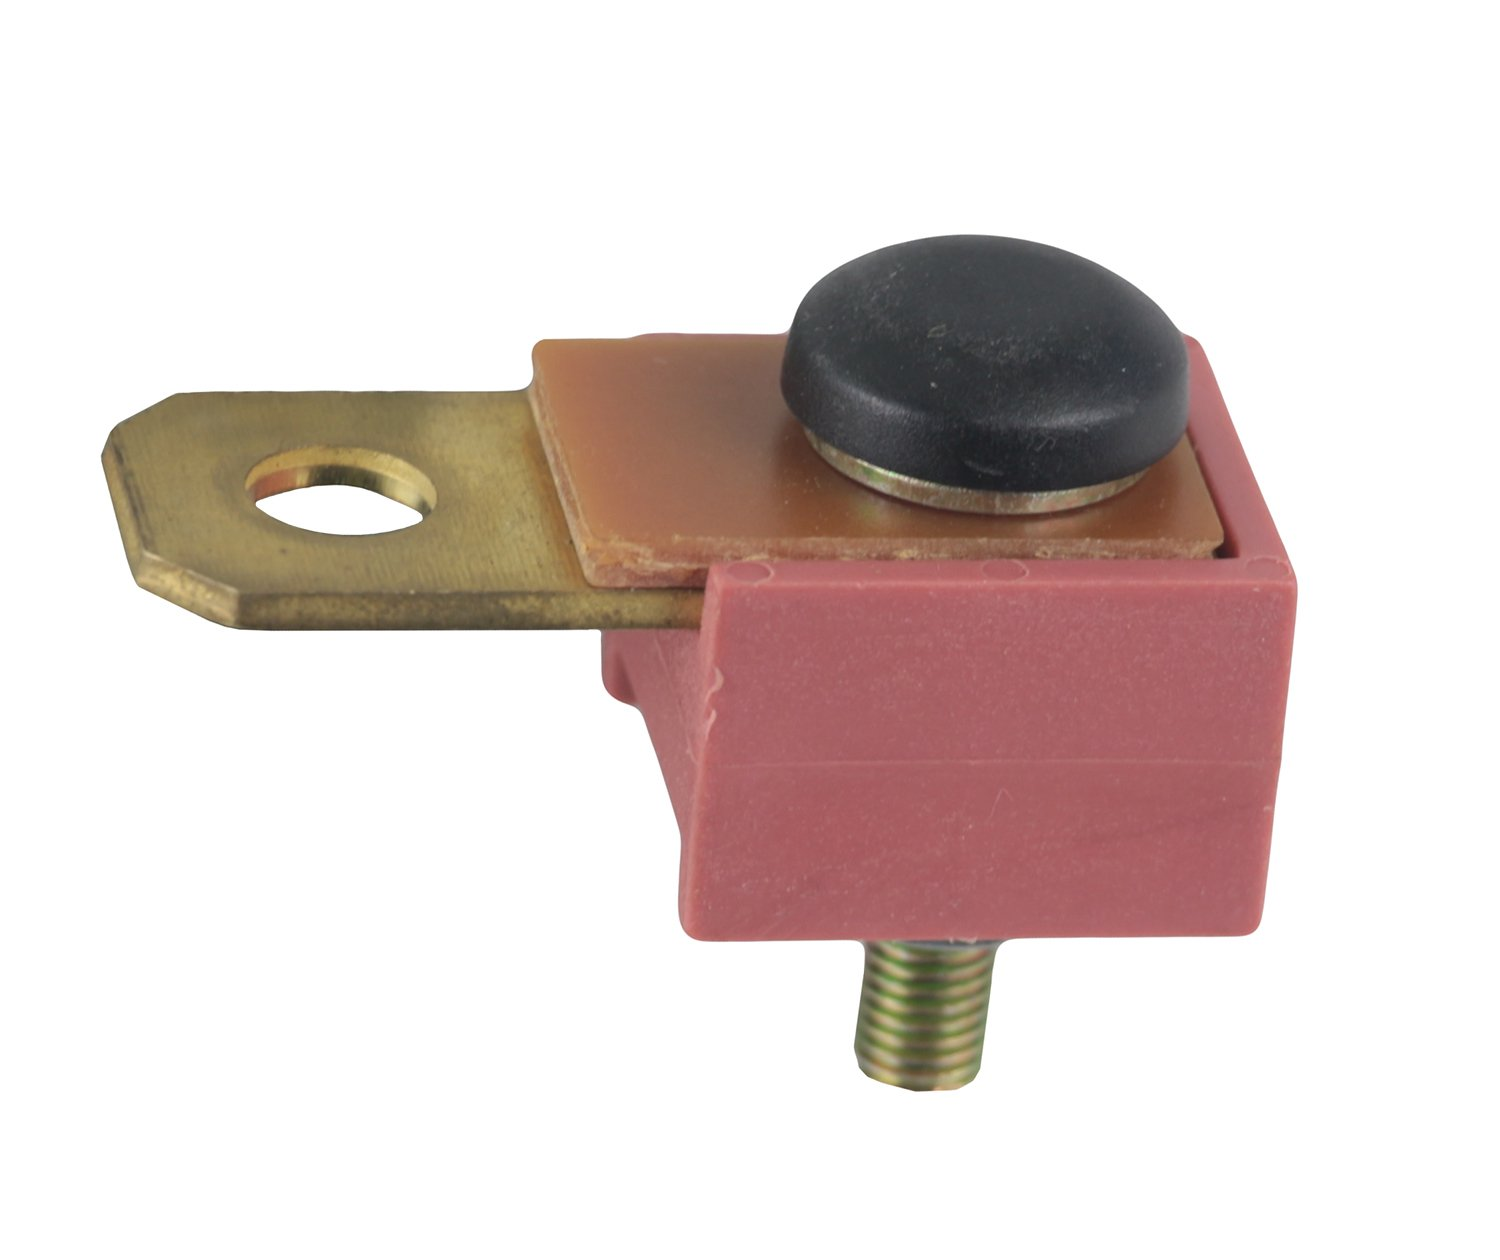 NEW 12V SOLENOID FITS MERCURY OUTBOARD 35HP 275 HP 89-818864T 89-846070 89-94318 89-96158 89-96158T 89818864T 89846070 8994318 8996158 8996158T RAREELECTRICAL